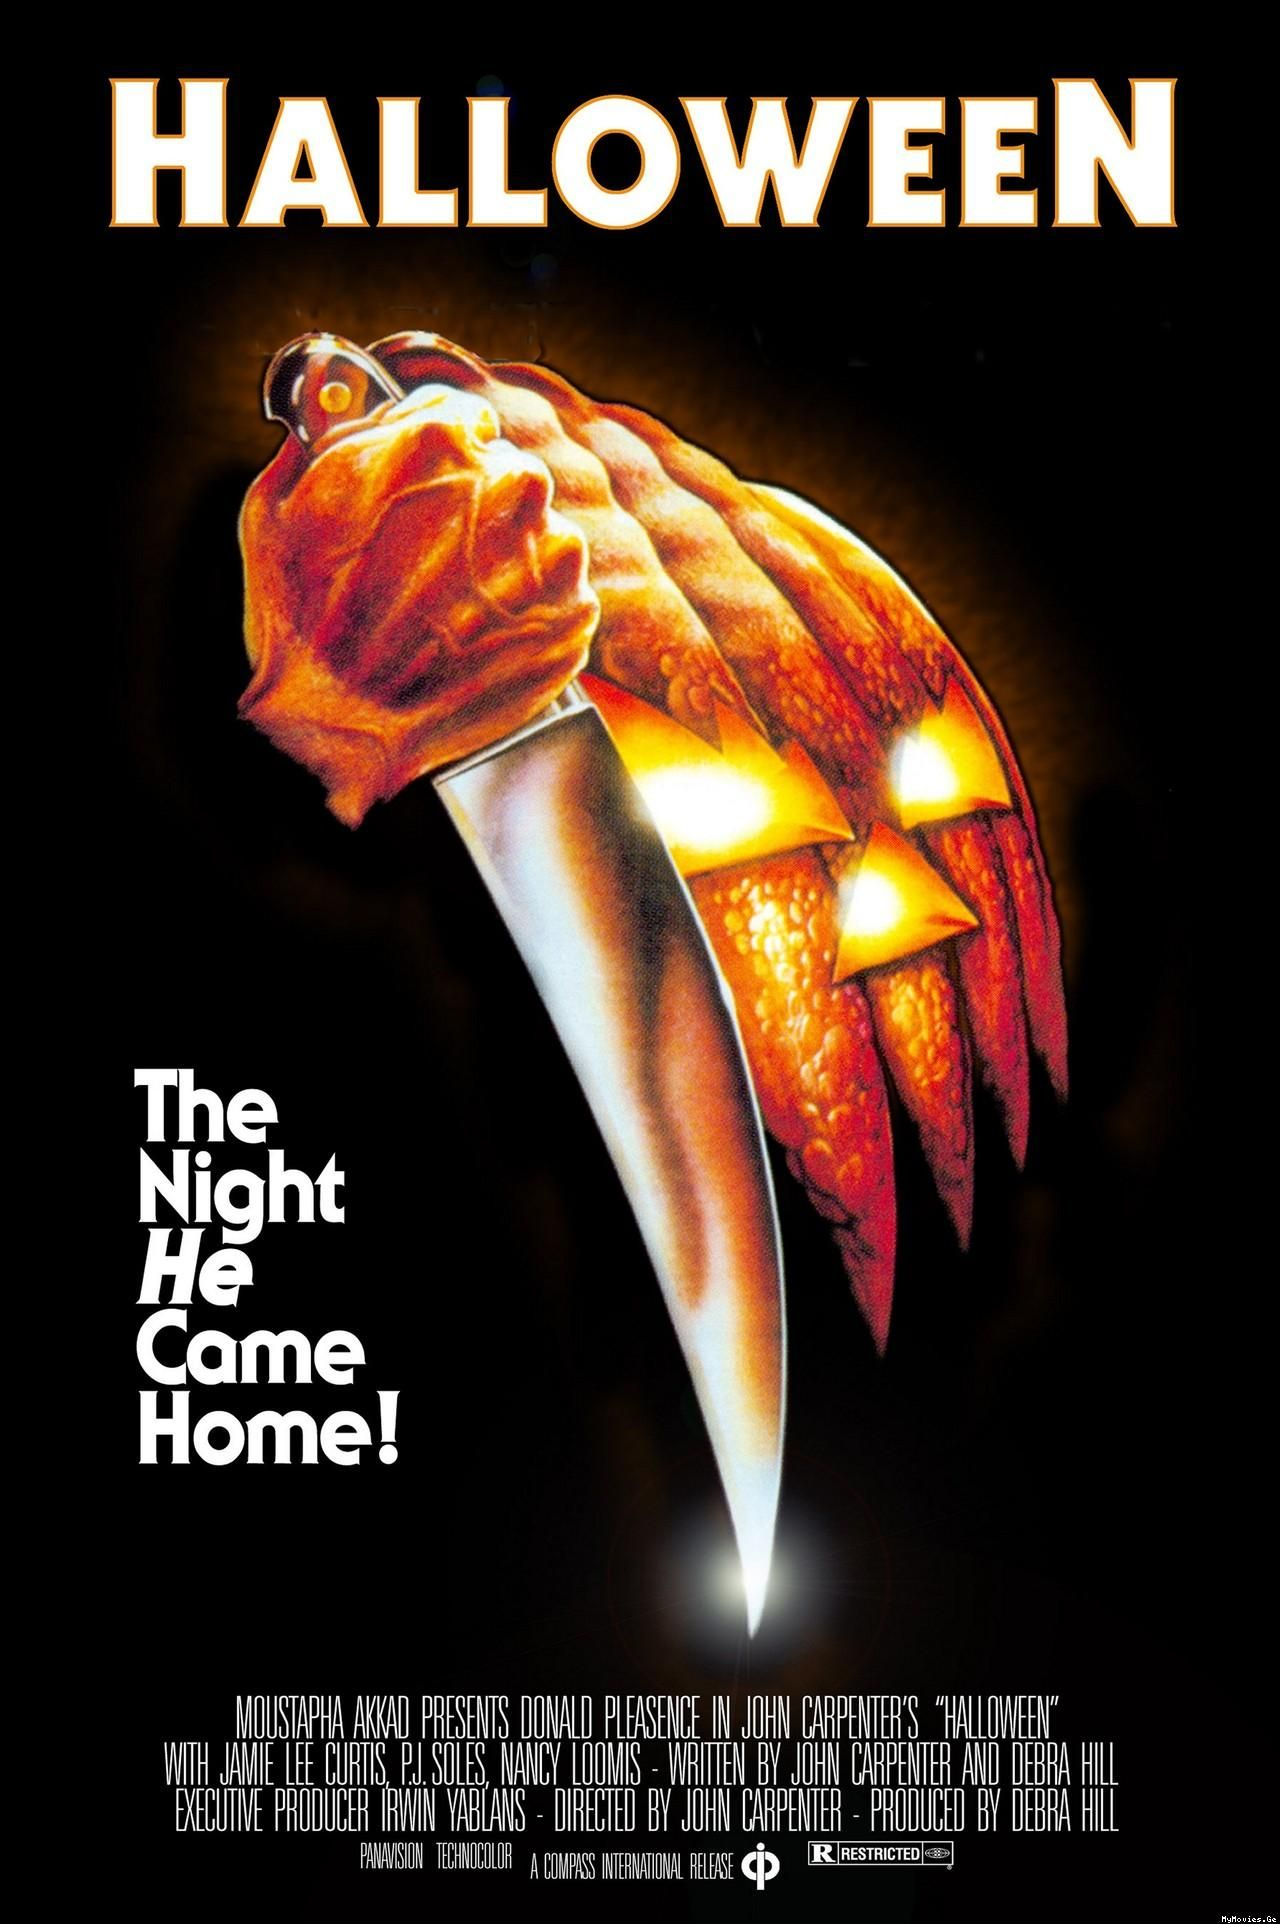 The 100 Best Movie Posters Of The Past 100 Years Halloween Movie